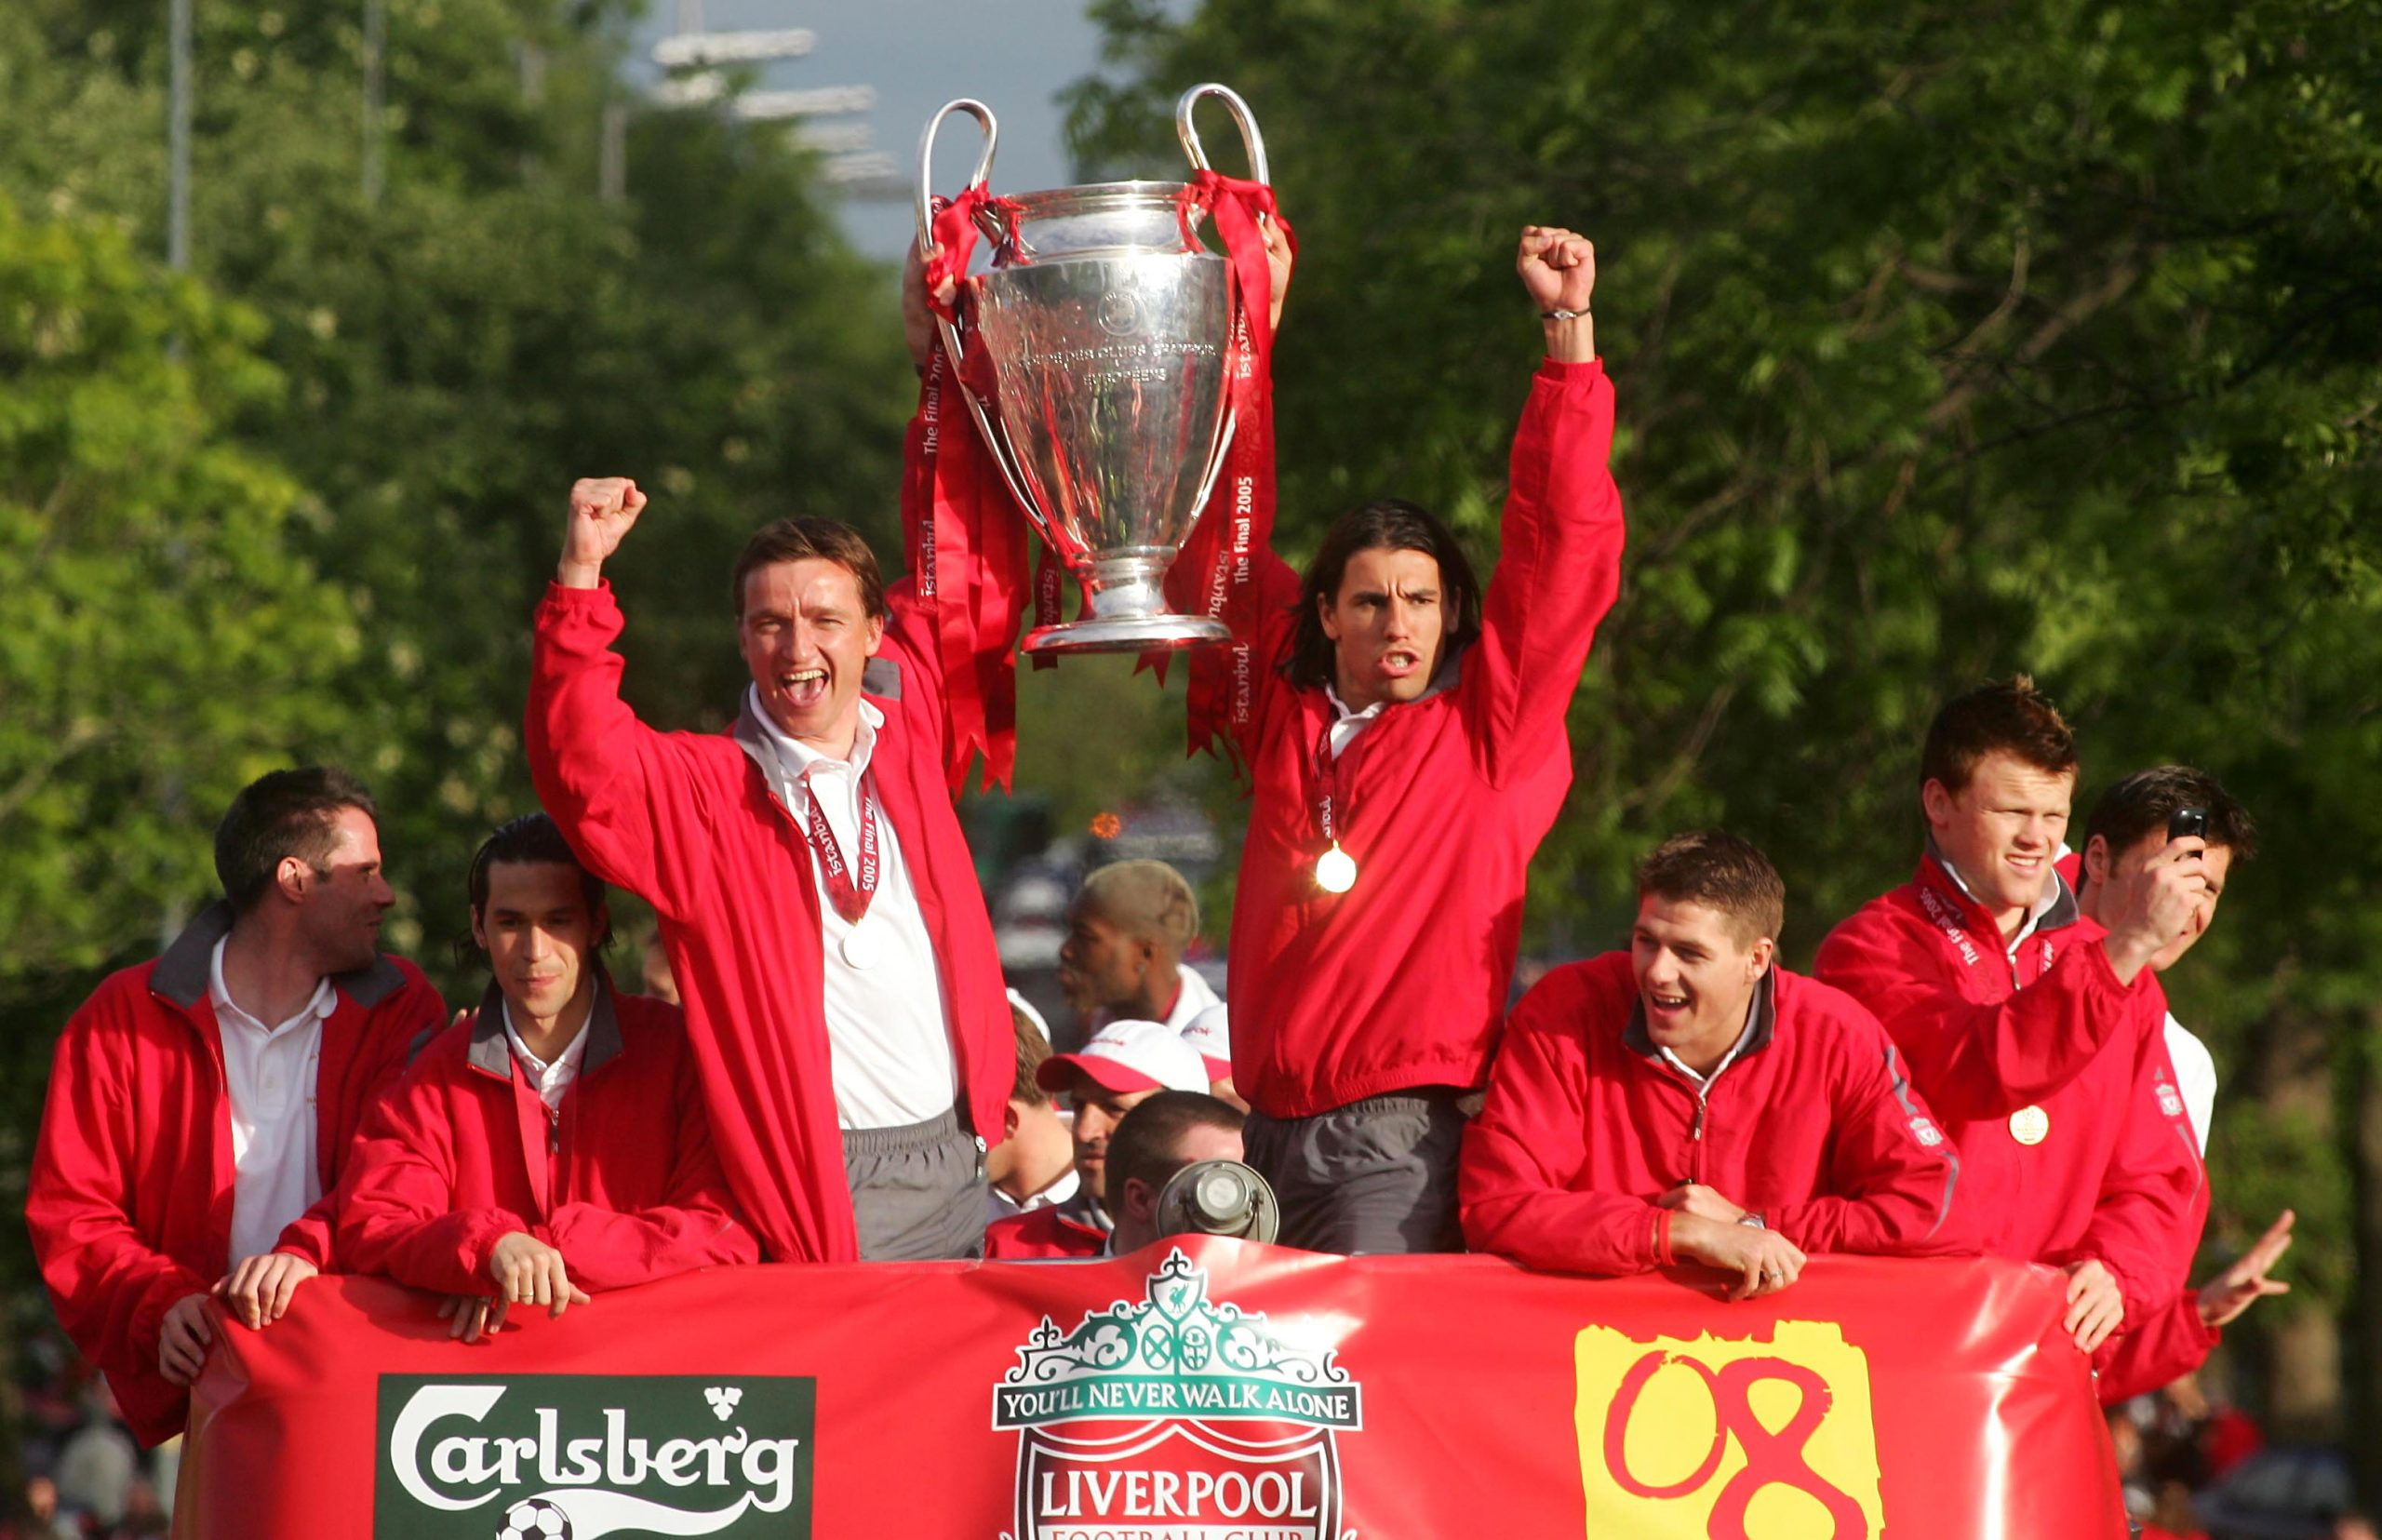 Liverpool's Vladimir Smicer and Milan Baros hold the trophy aloft during a parade through the streets of Liverpool the ...